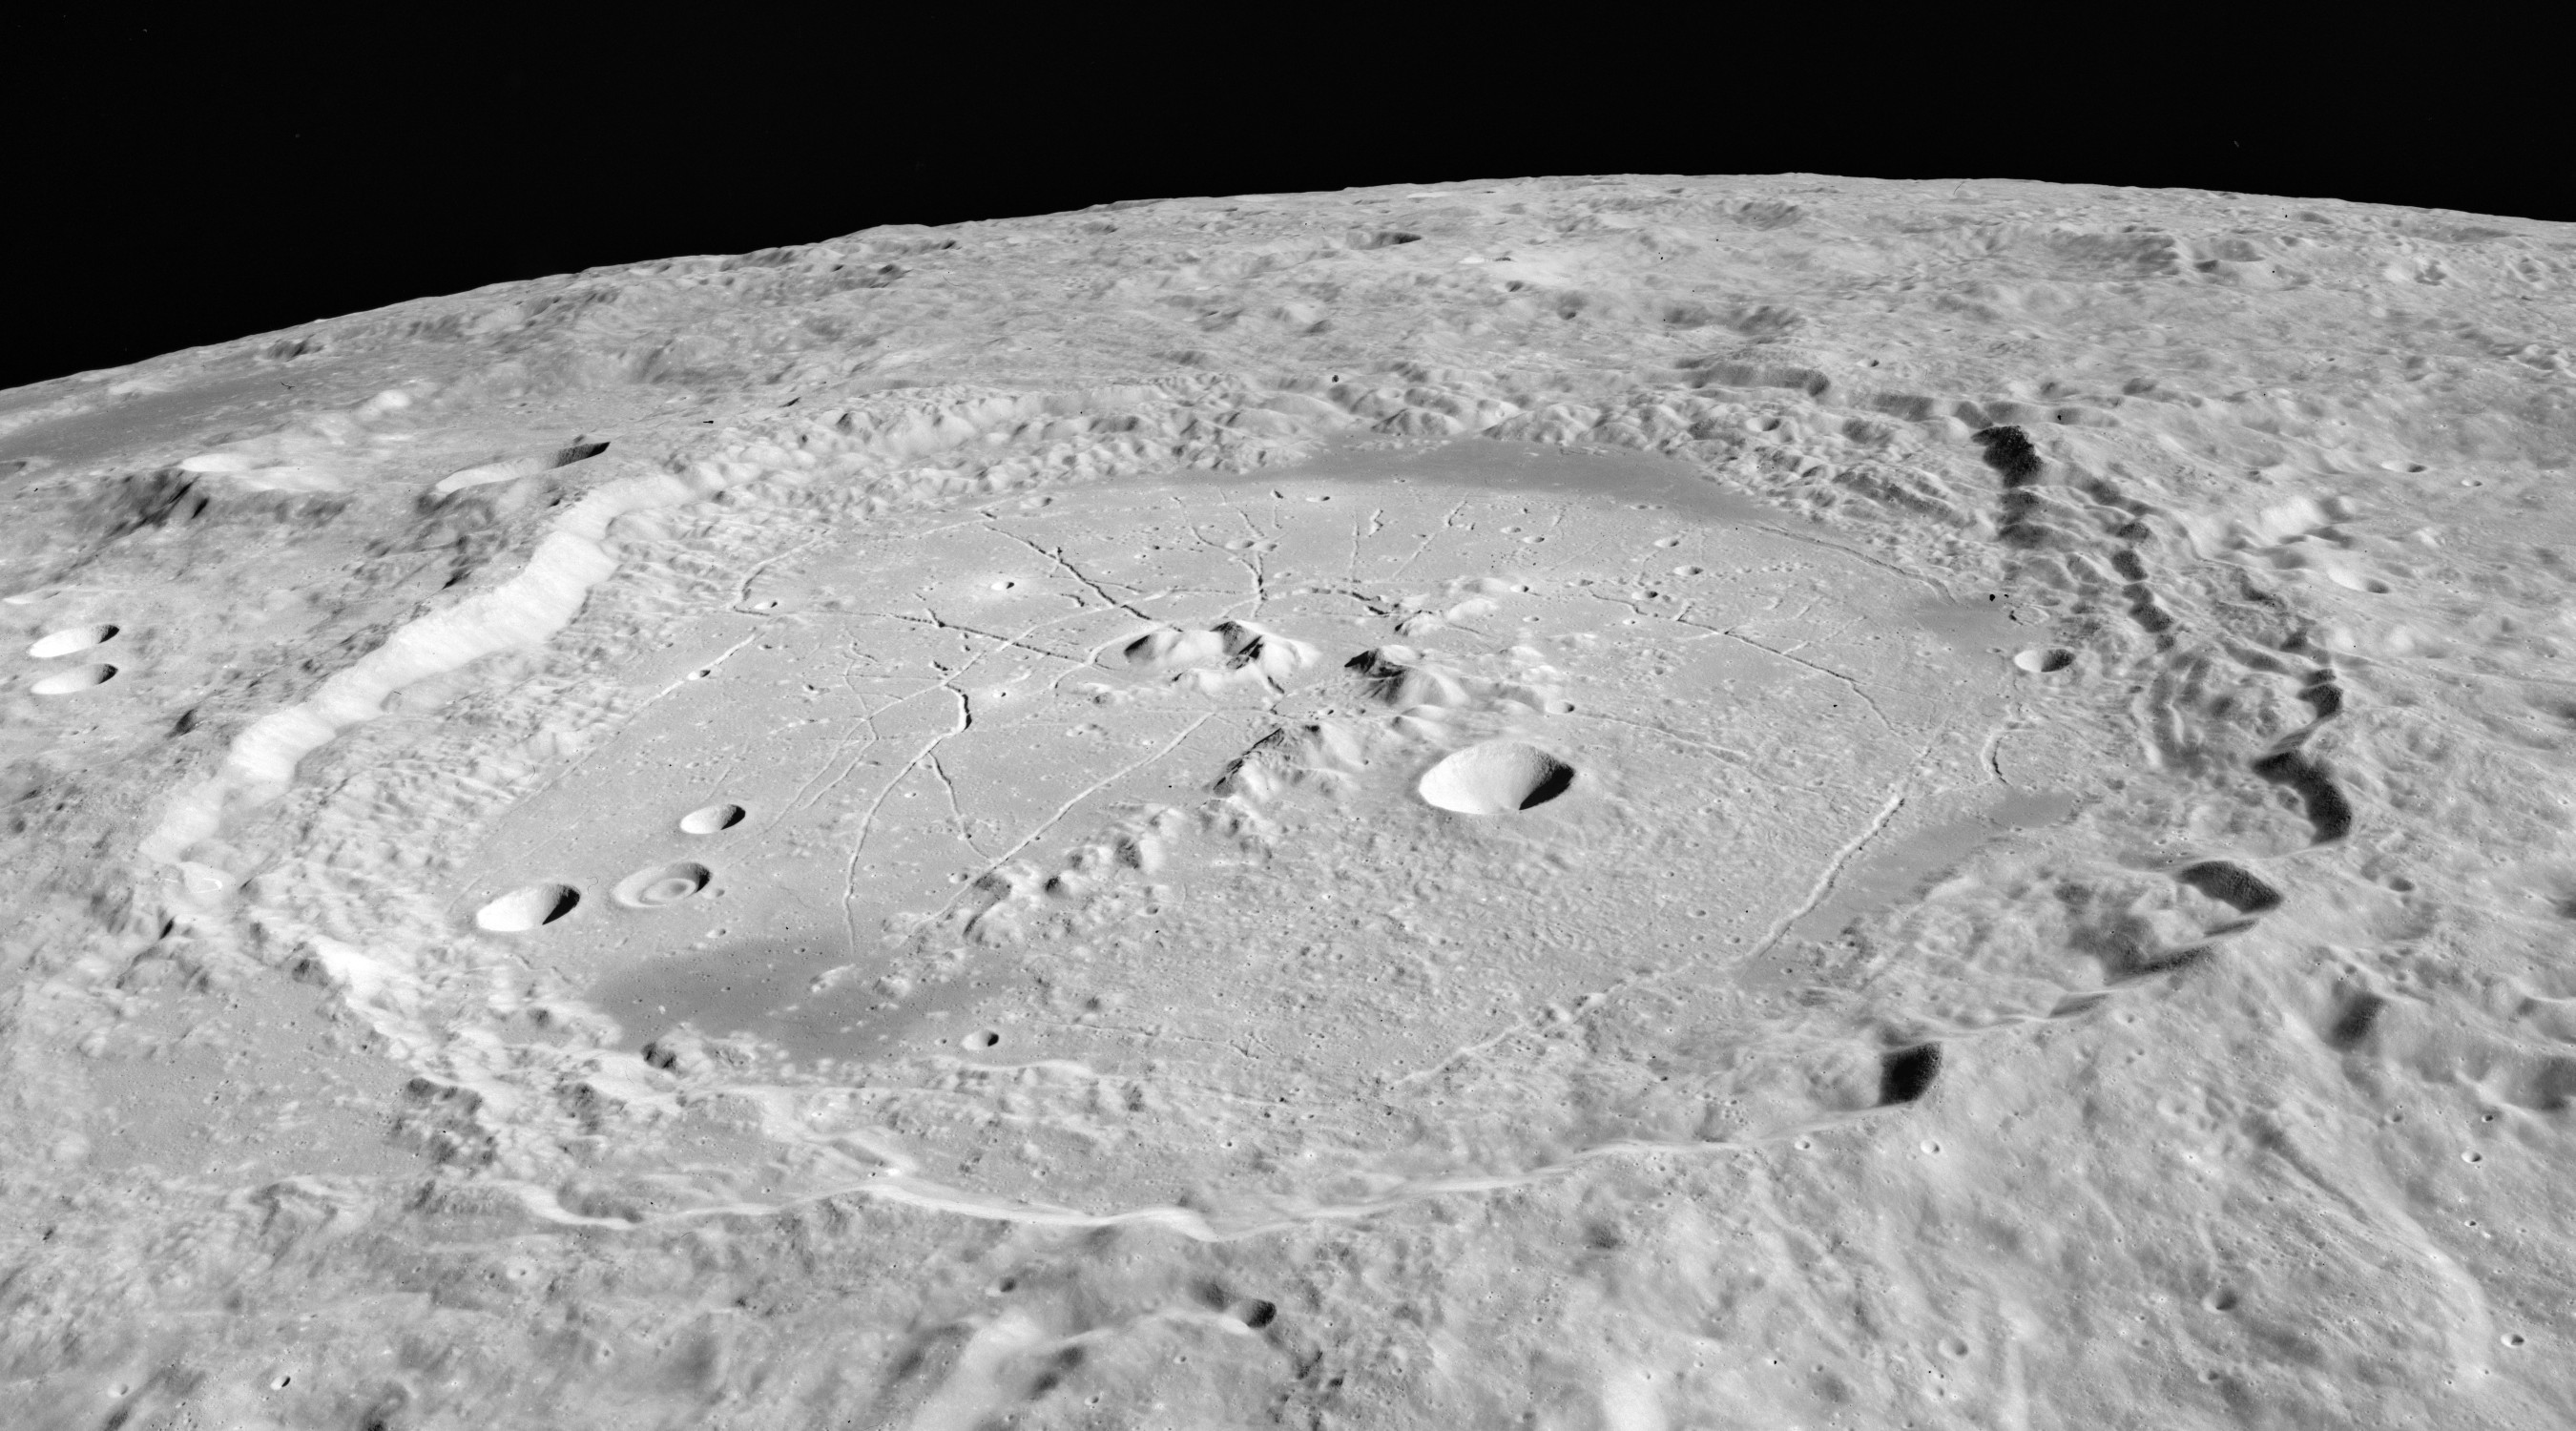 File:Humboldt crater AS15-M-2513.jpg